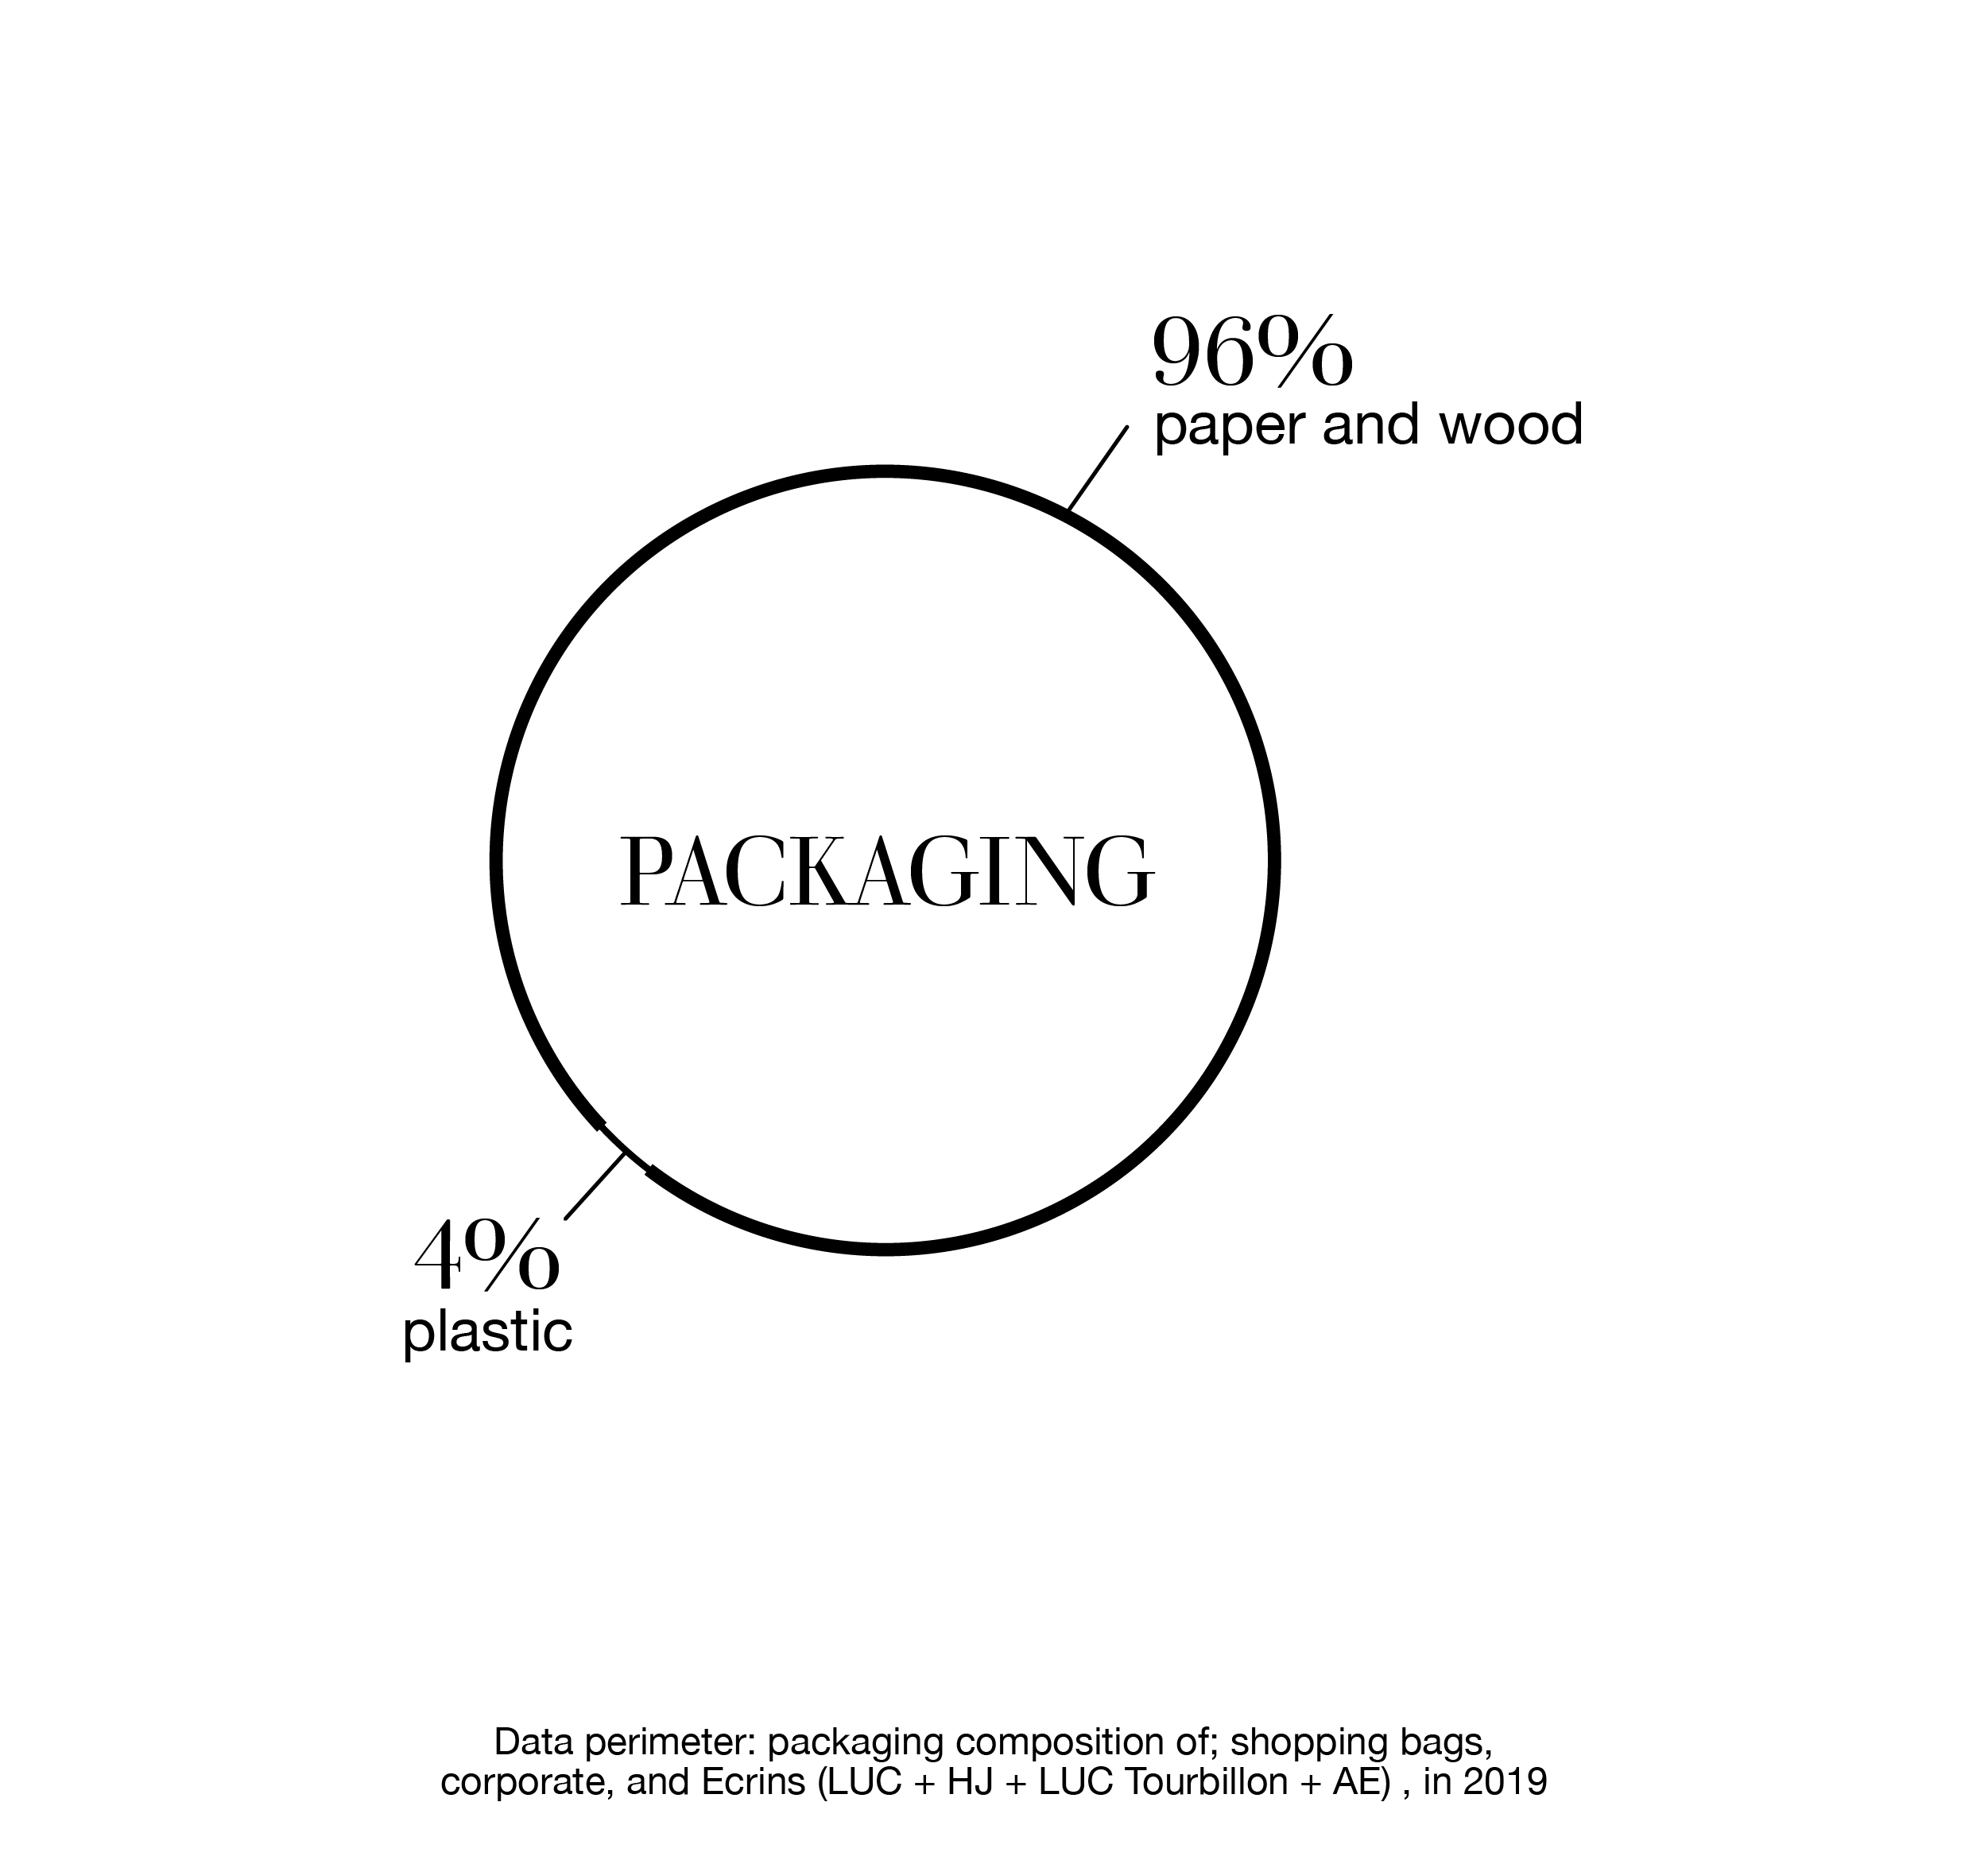 icon showing rate of packaging composition